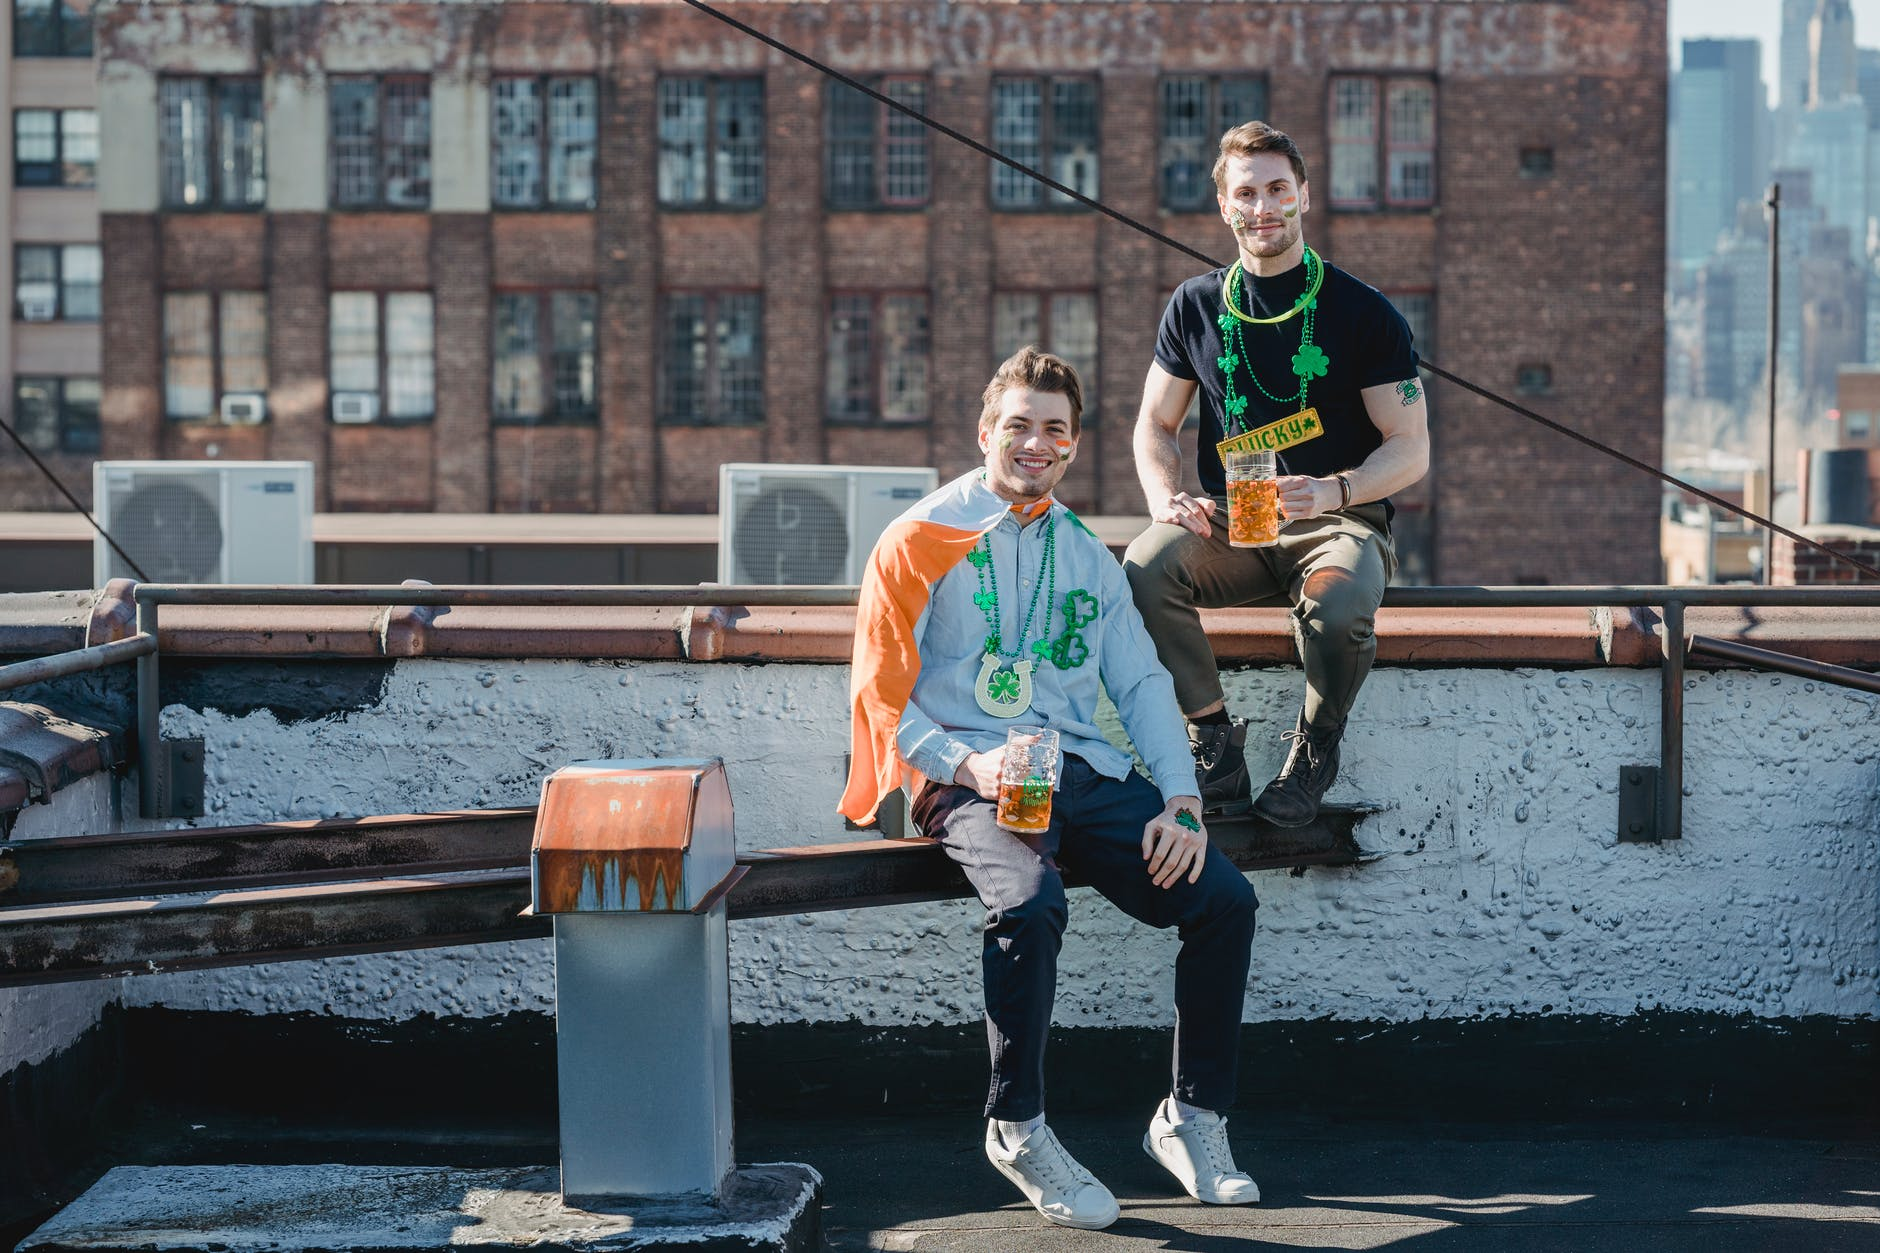 cheerful young men boozing on terrace while celebrating st patricks day